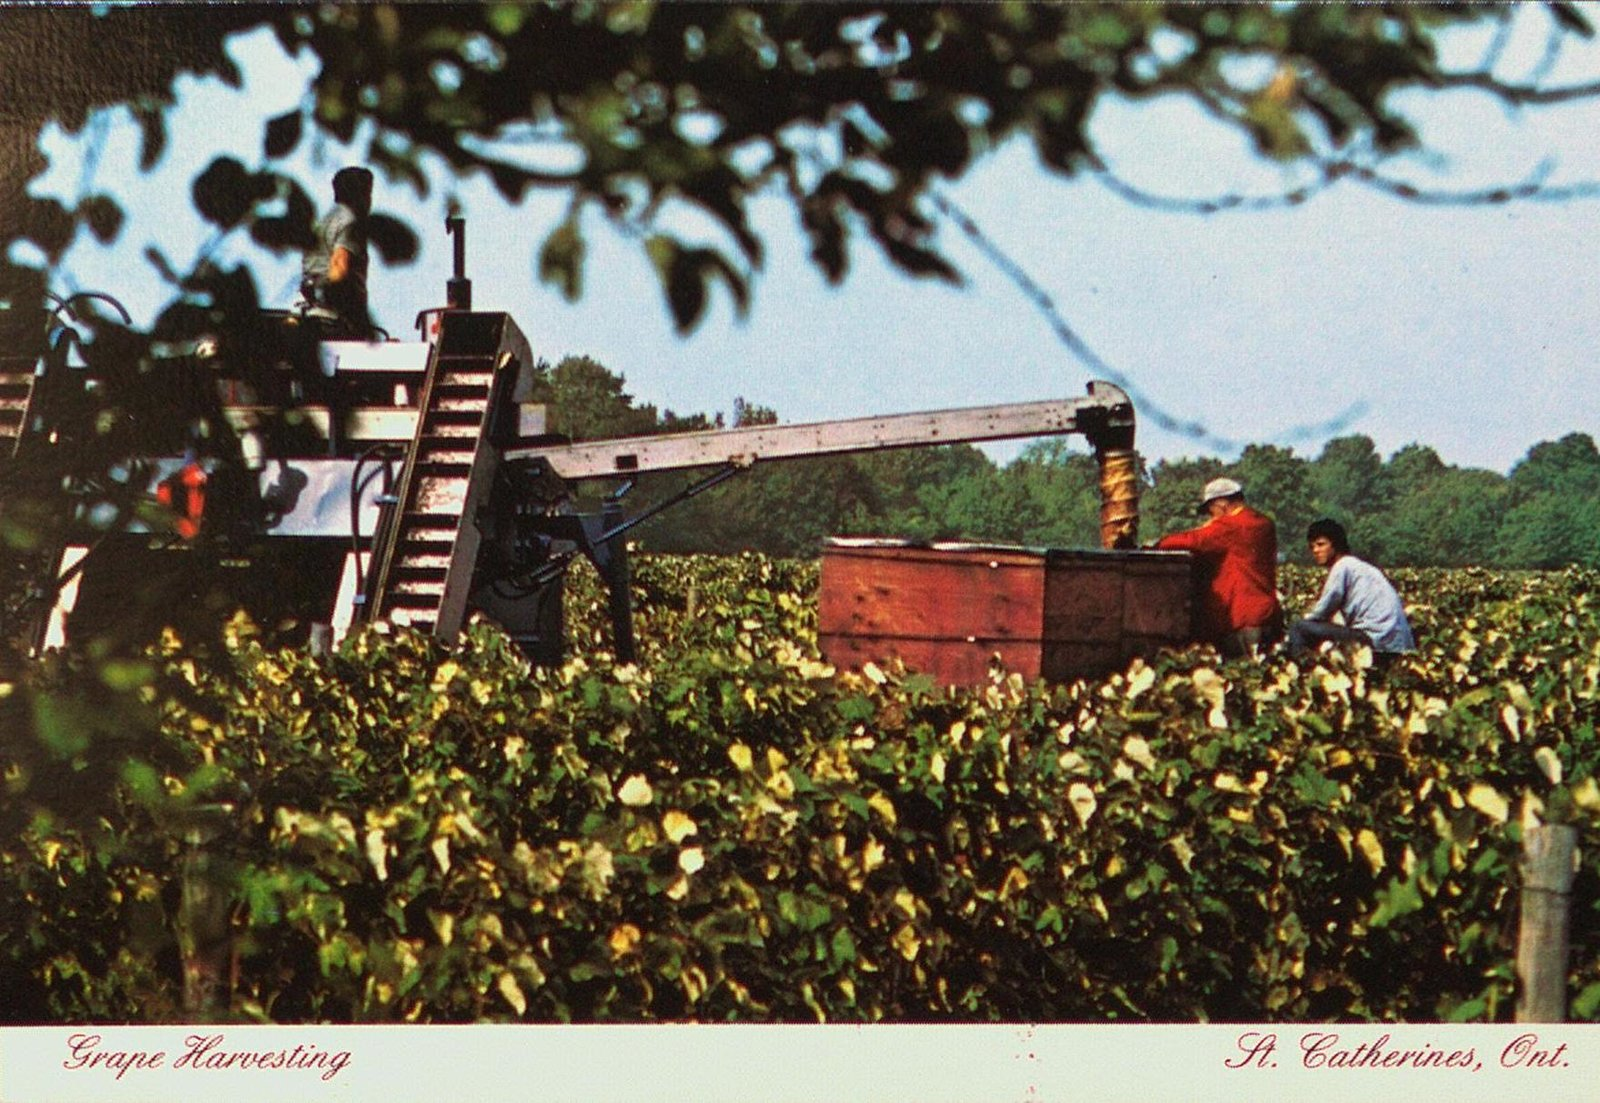 Grape Harvesting in St. Catharines